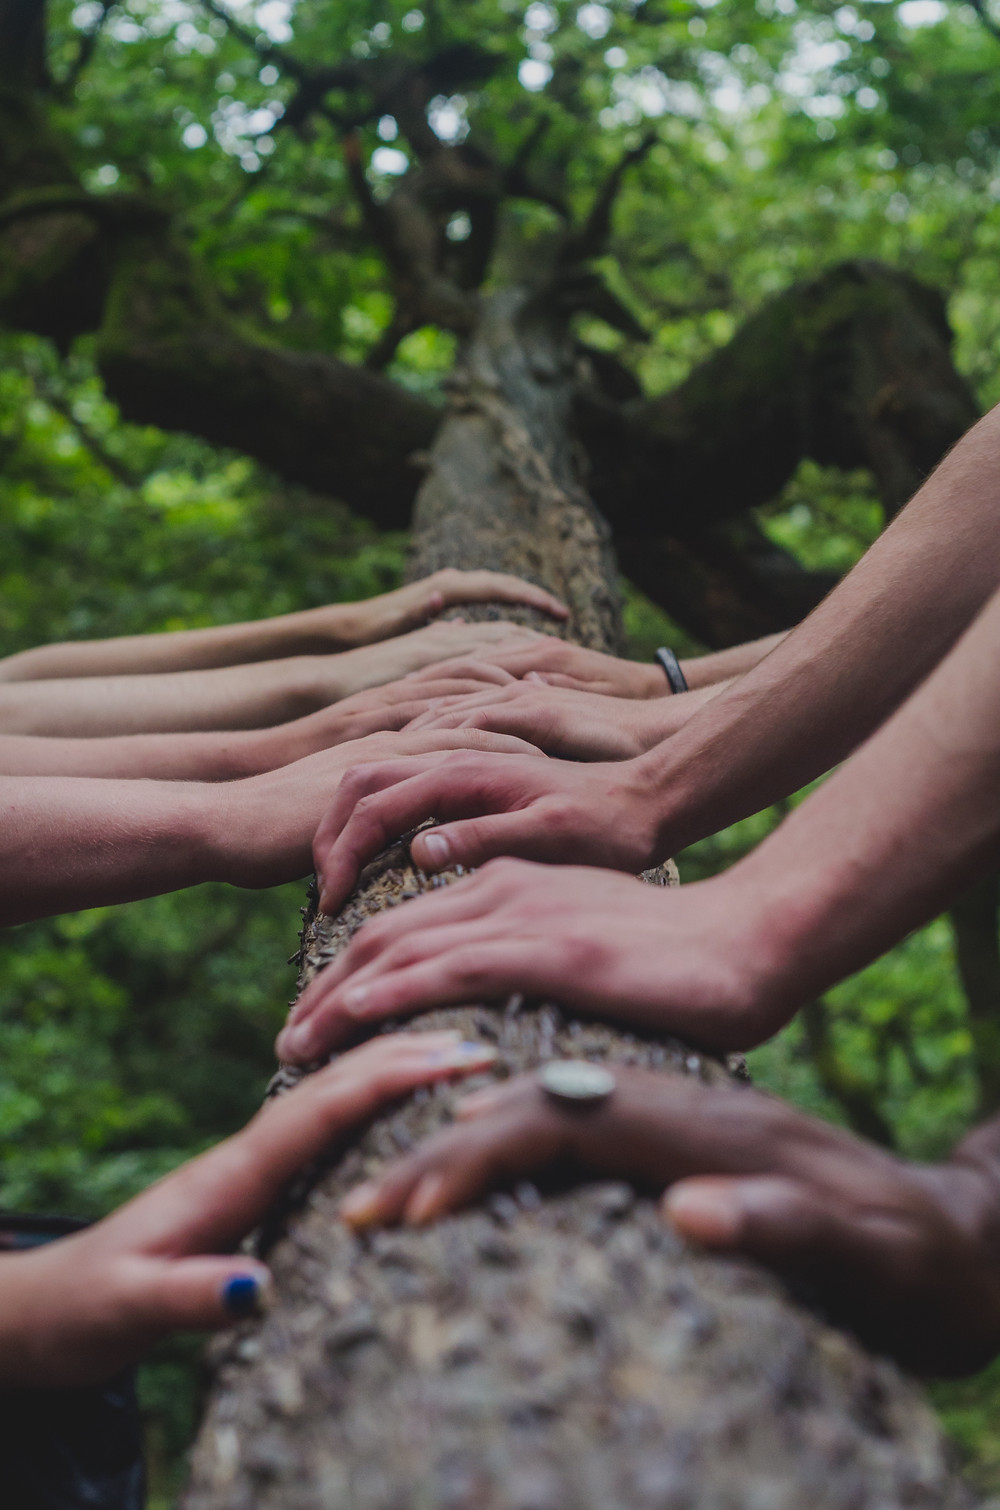 Photograph of multiple pairs of hands resting on a tree trunk which stretches from the foreground of the photograph backwards, with the tree's canopy at the top of the image. Photo is courtesy of Shane Rounce on Unsplash